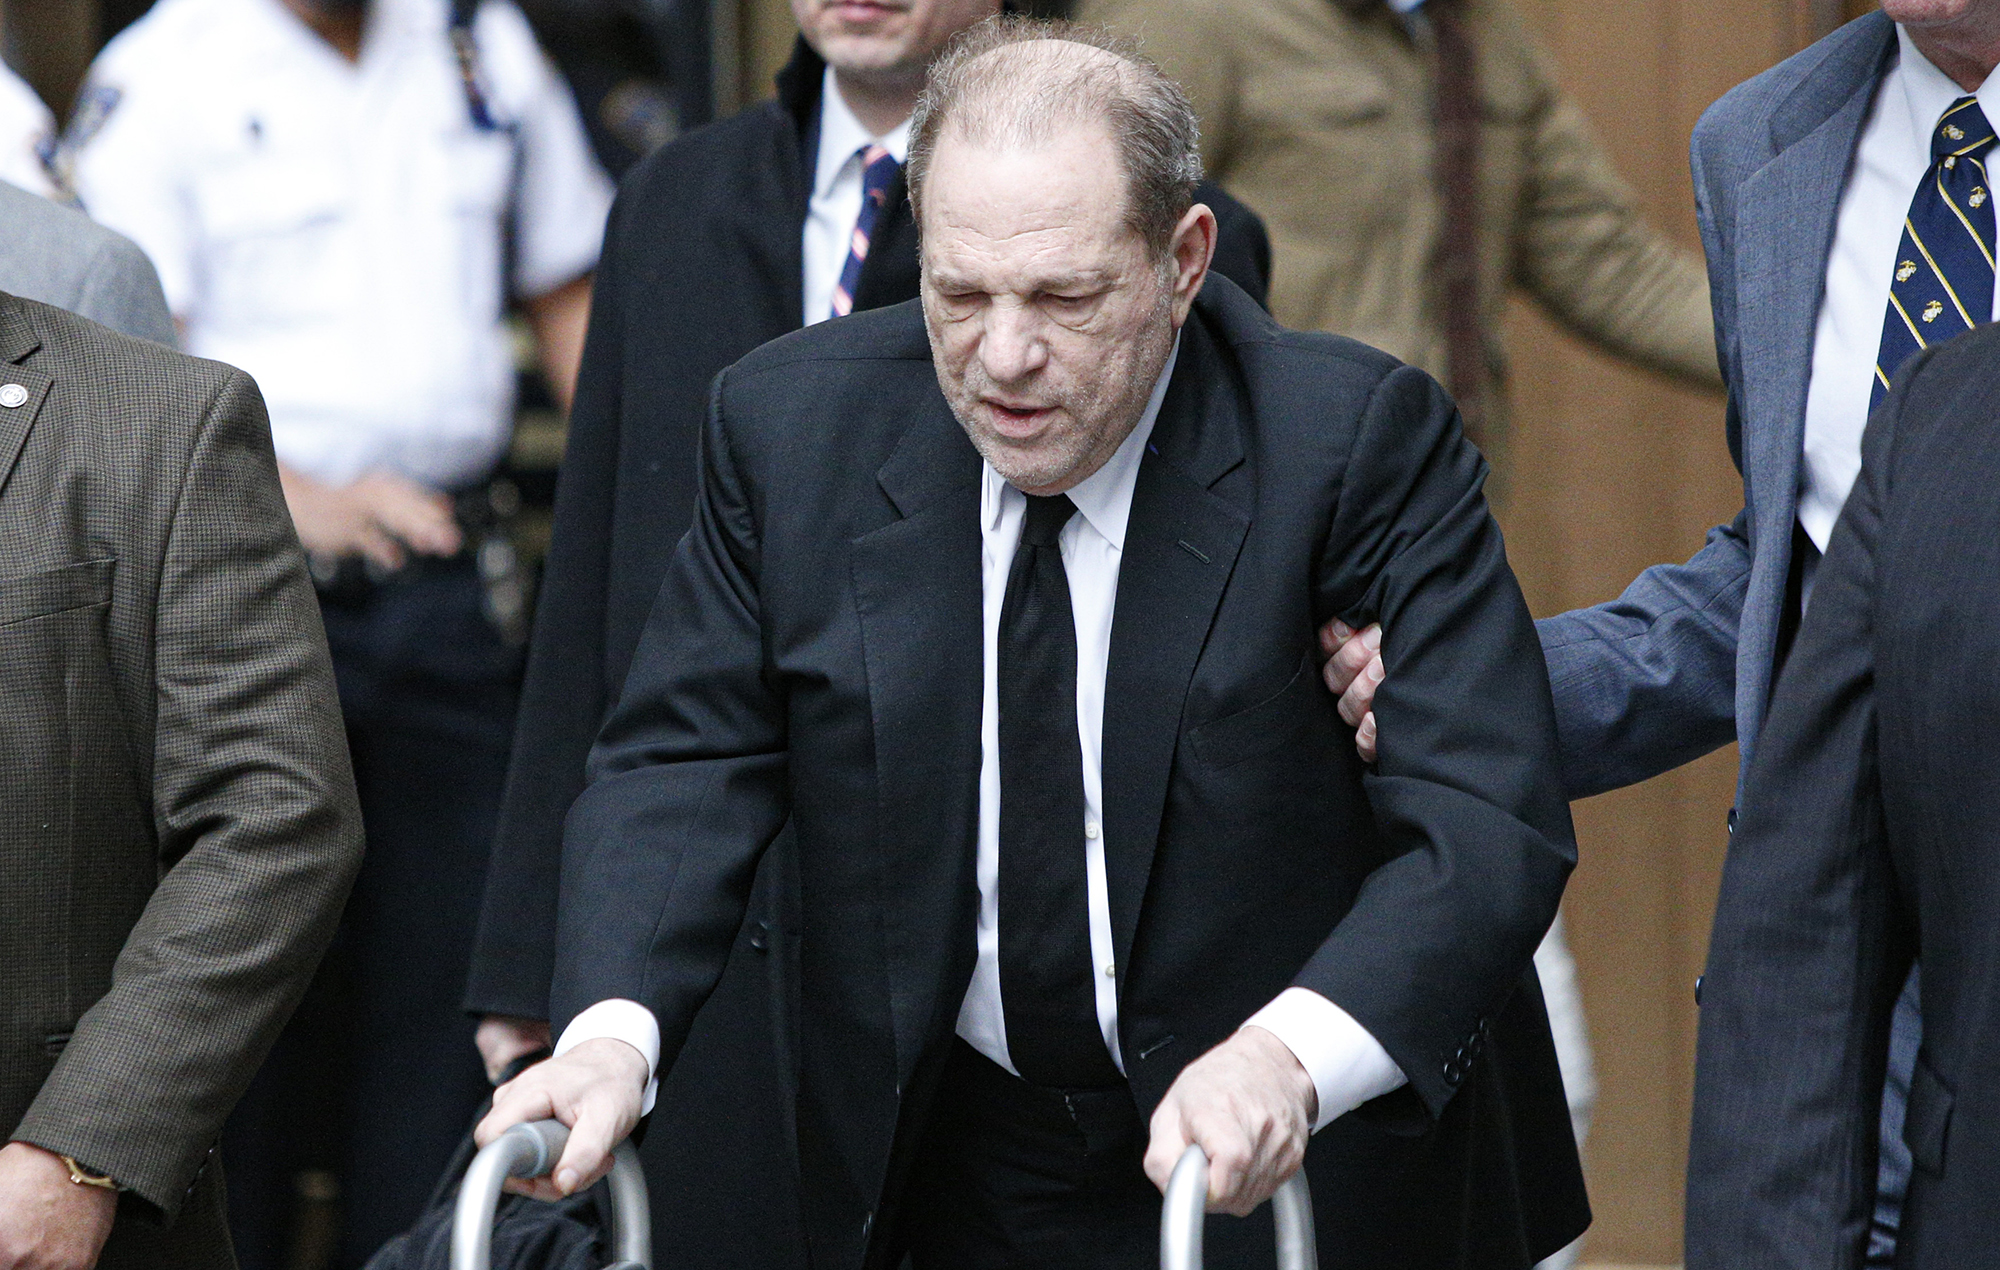 Harvey Weinstein leaves court on January 6, 2020 in New York City